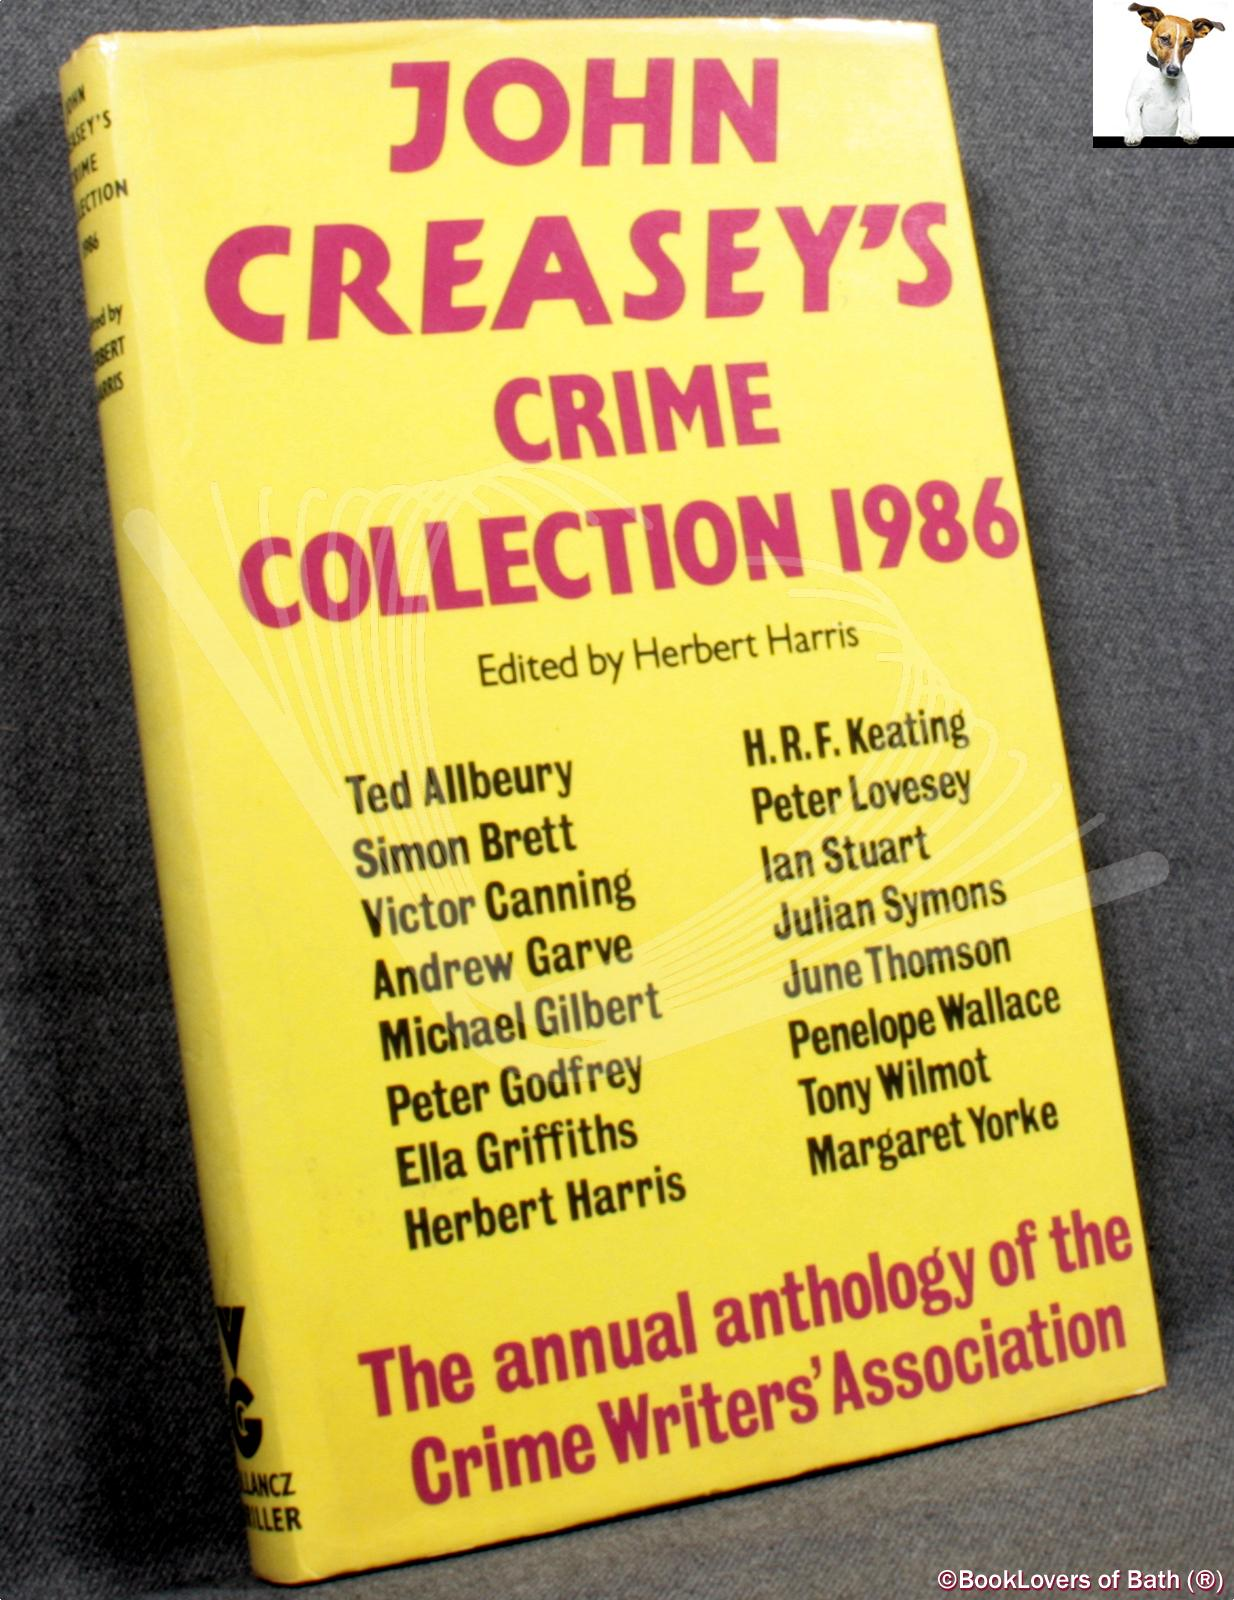 Crime Collection 1986: An Anthology by Members of the Crime Writers' Association - John Creasey